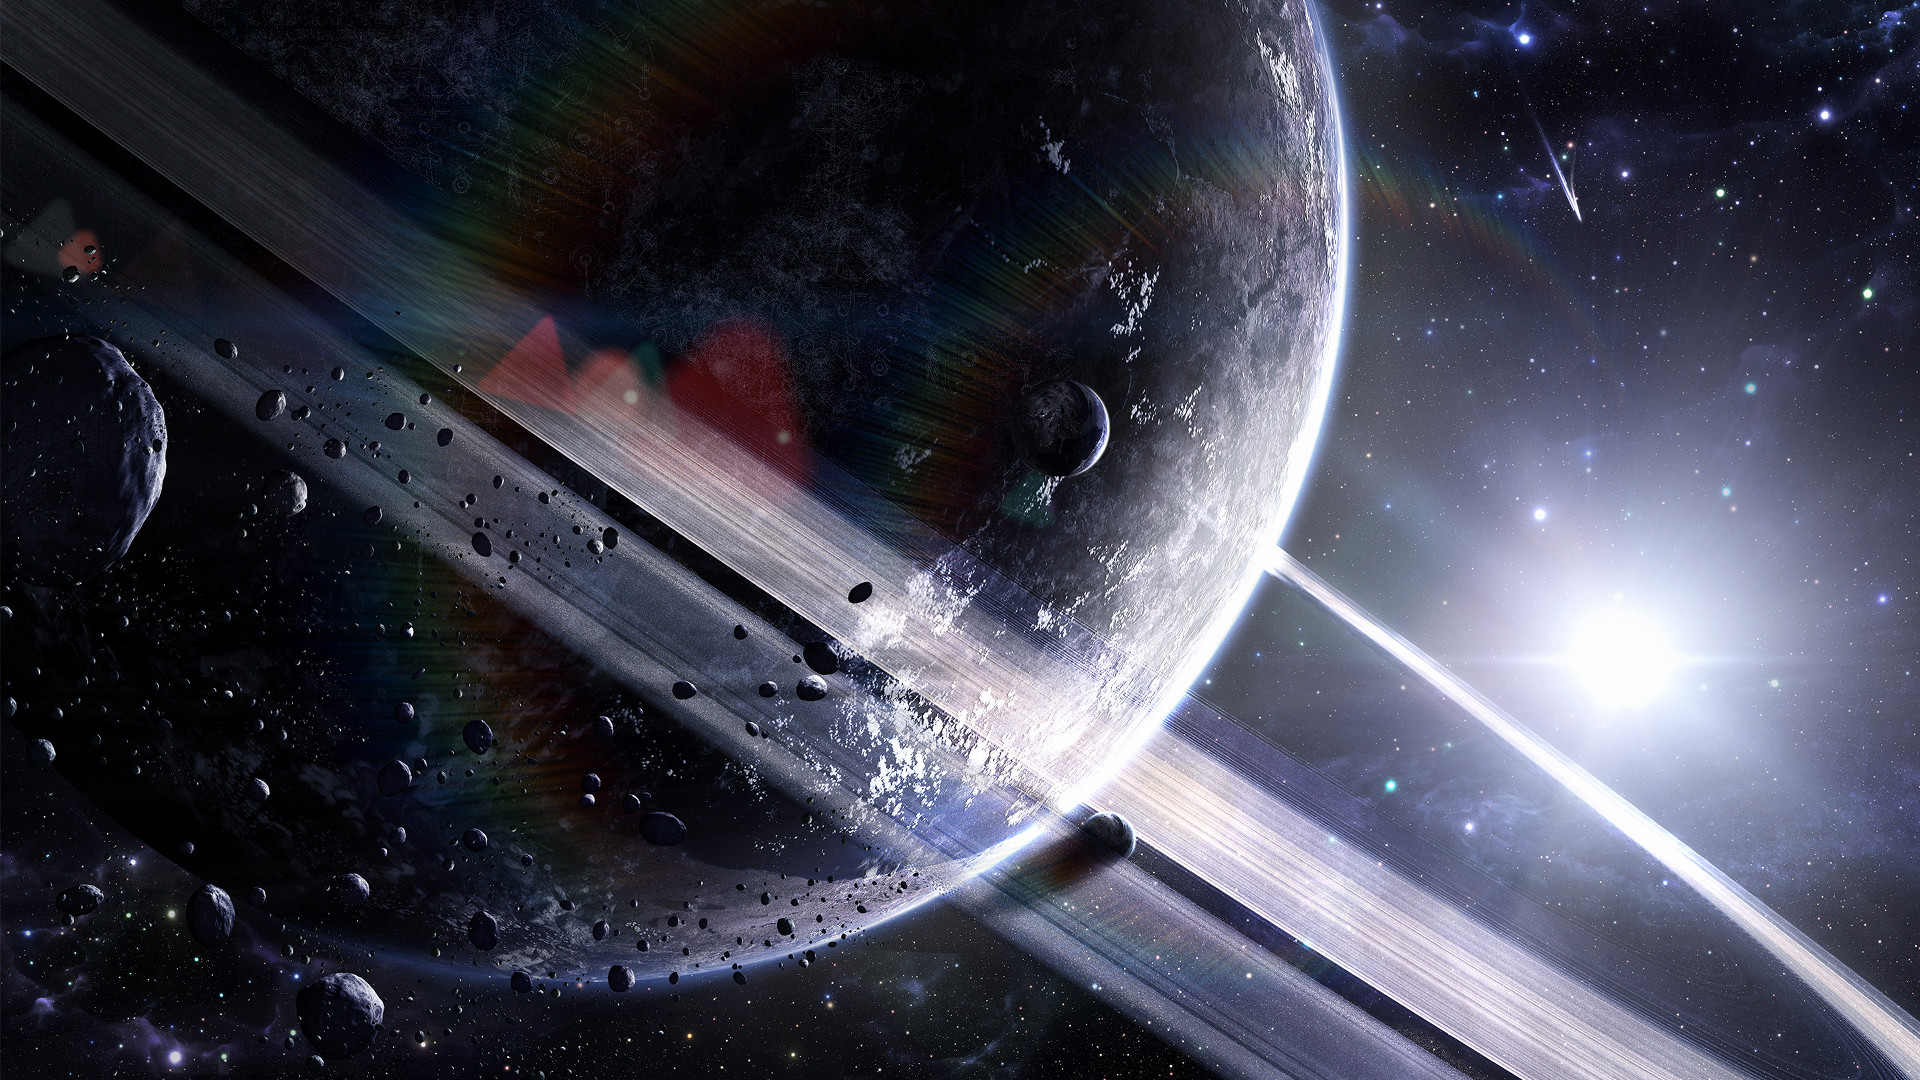 Universe Wallpapers 1080p 75 Images: 1080p Space Wallpaper (72+ Images